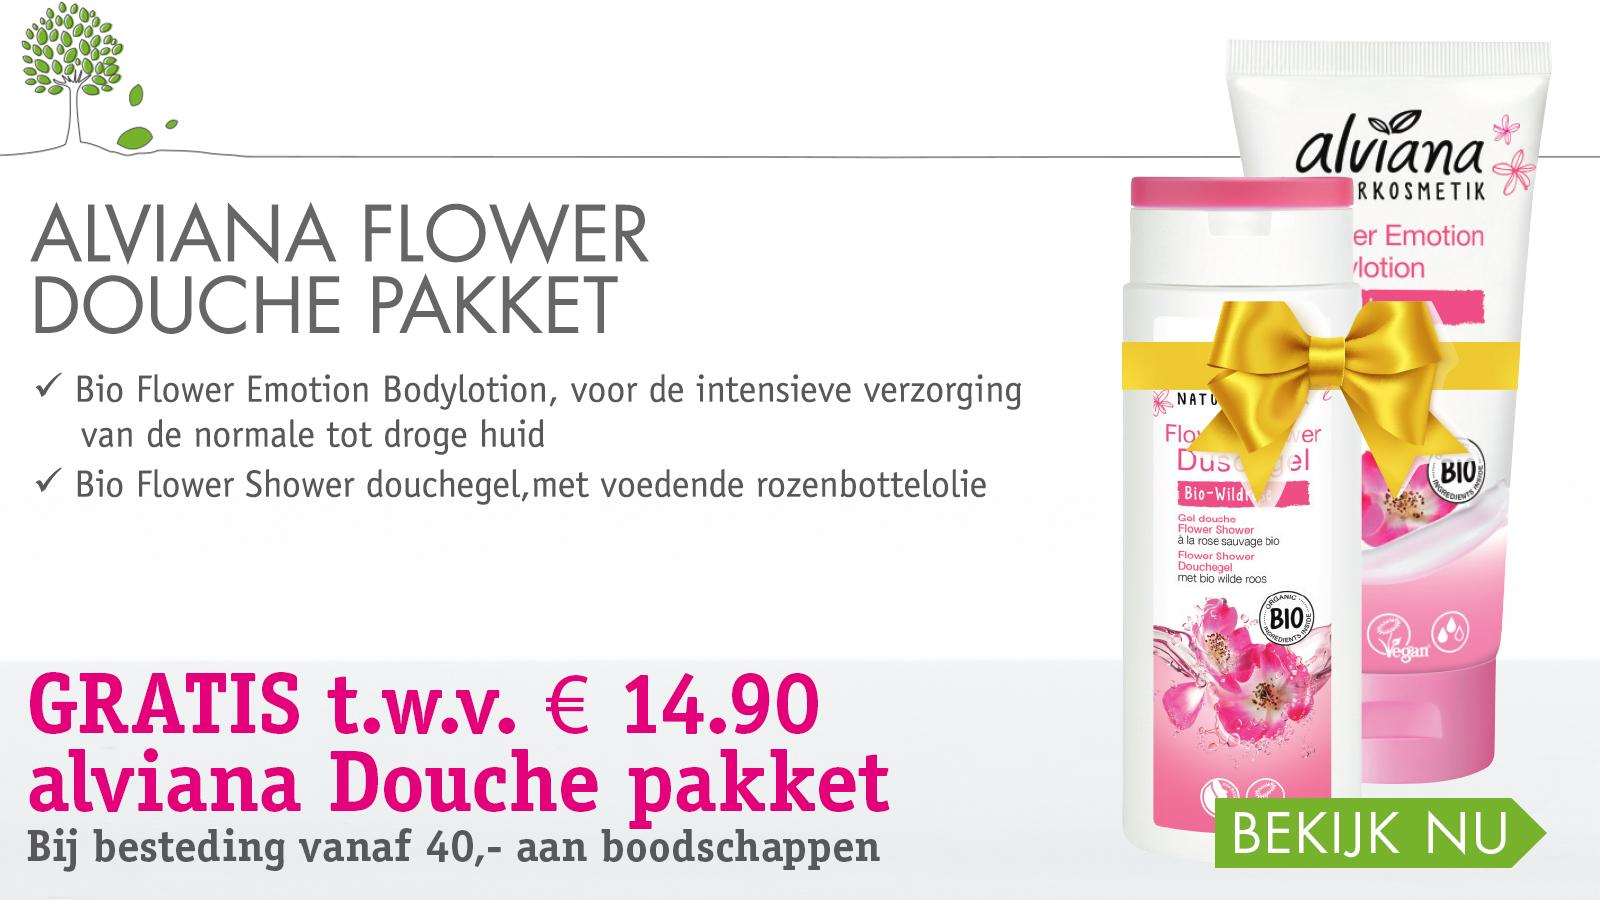 alviana douche pakket-Week-48-GW-BANNER-HOME-MAIN-1600x900-03